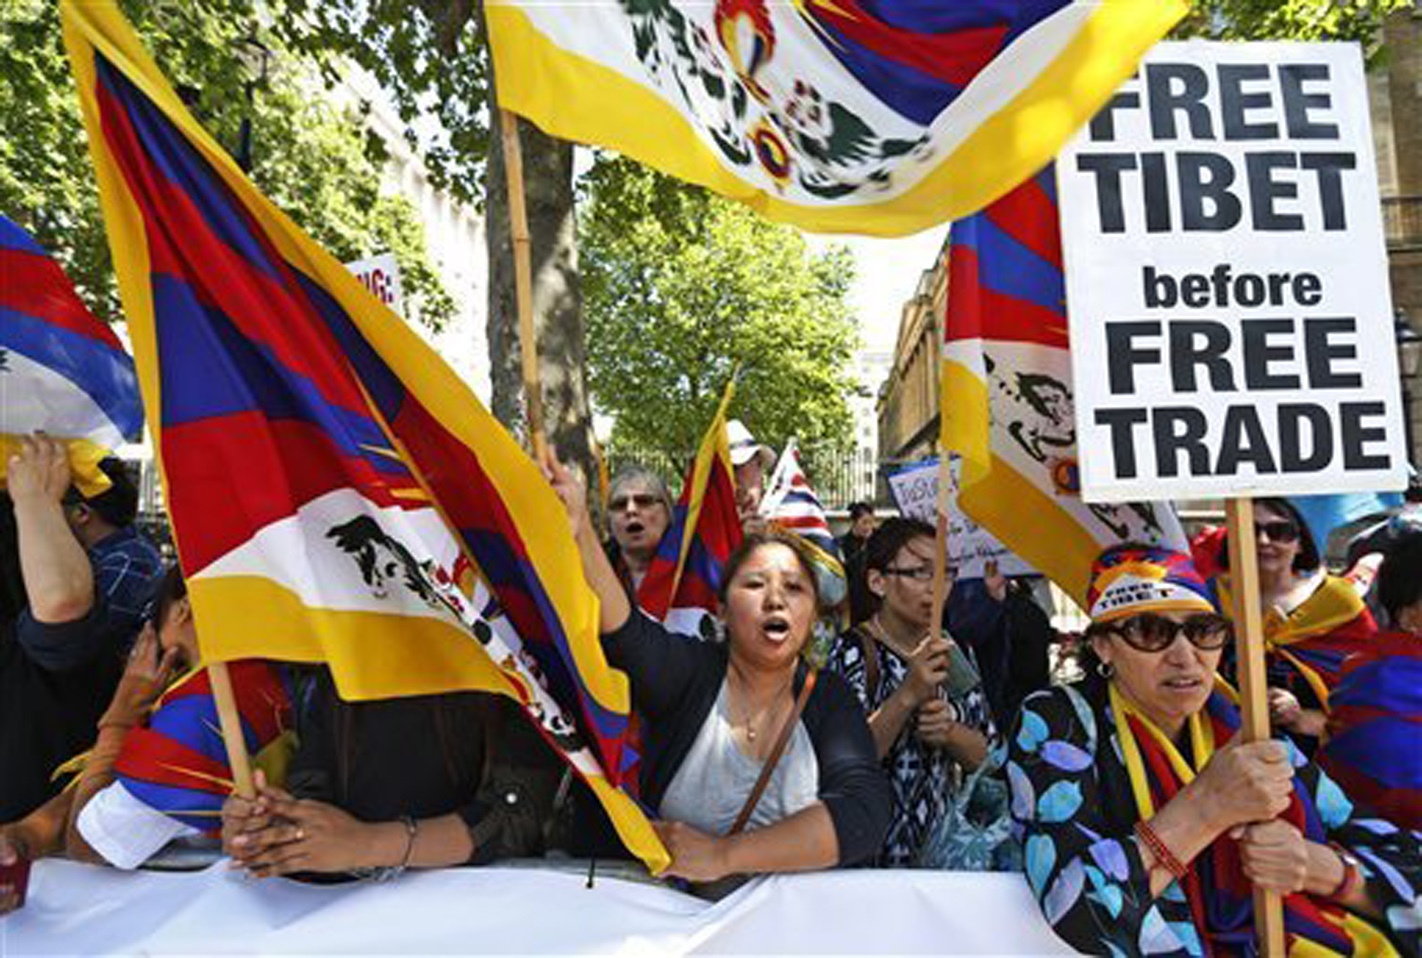 Tibet supporters protest as visiting Chinese Premier dictates terms to Britain